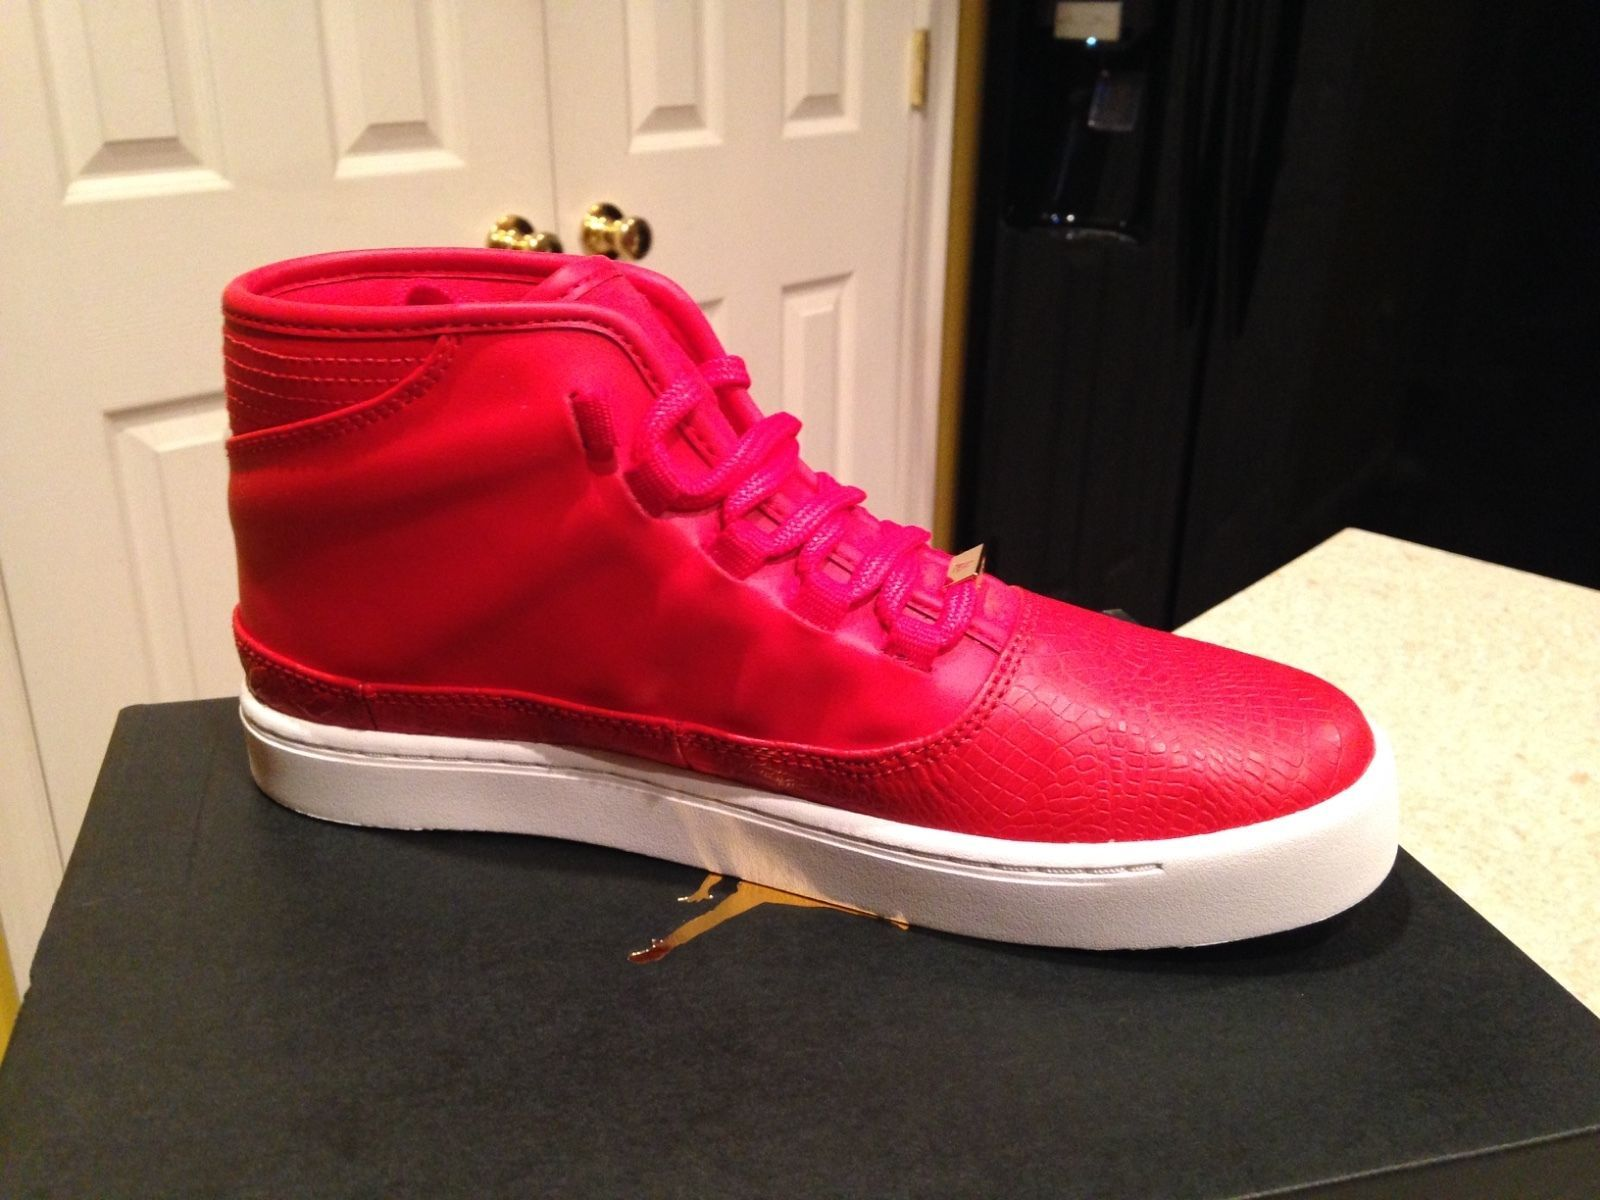 Primary image for Nike Jordan WestBrook O BG 768935 601 size 5Y-7Y University Red